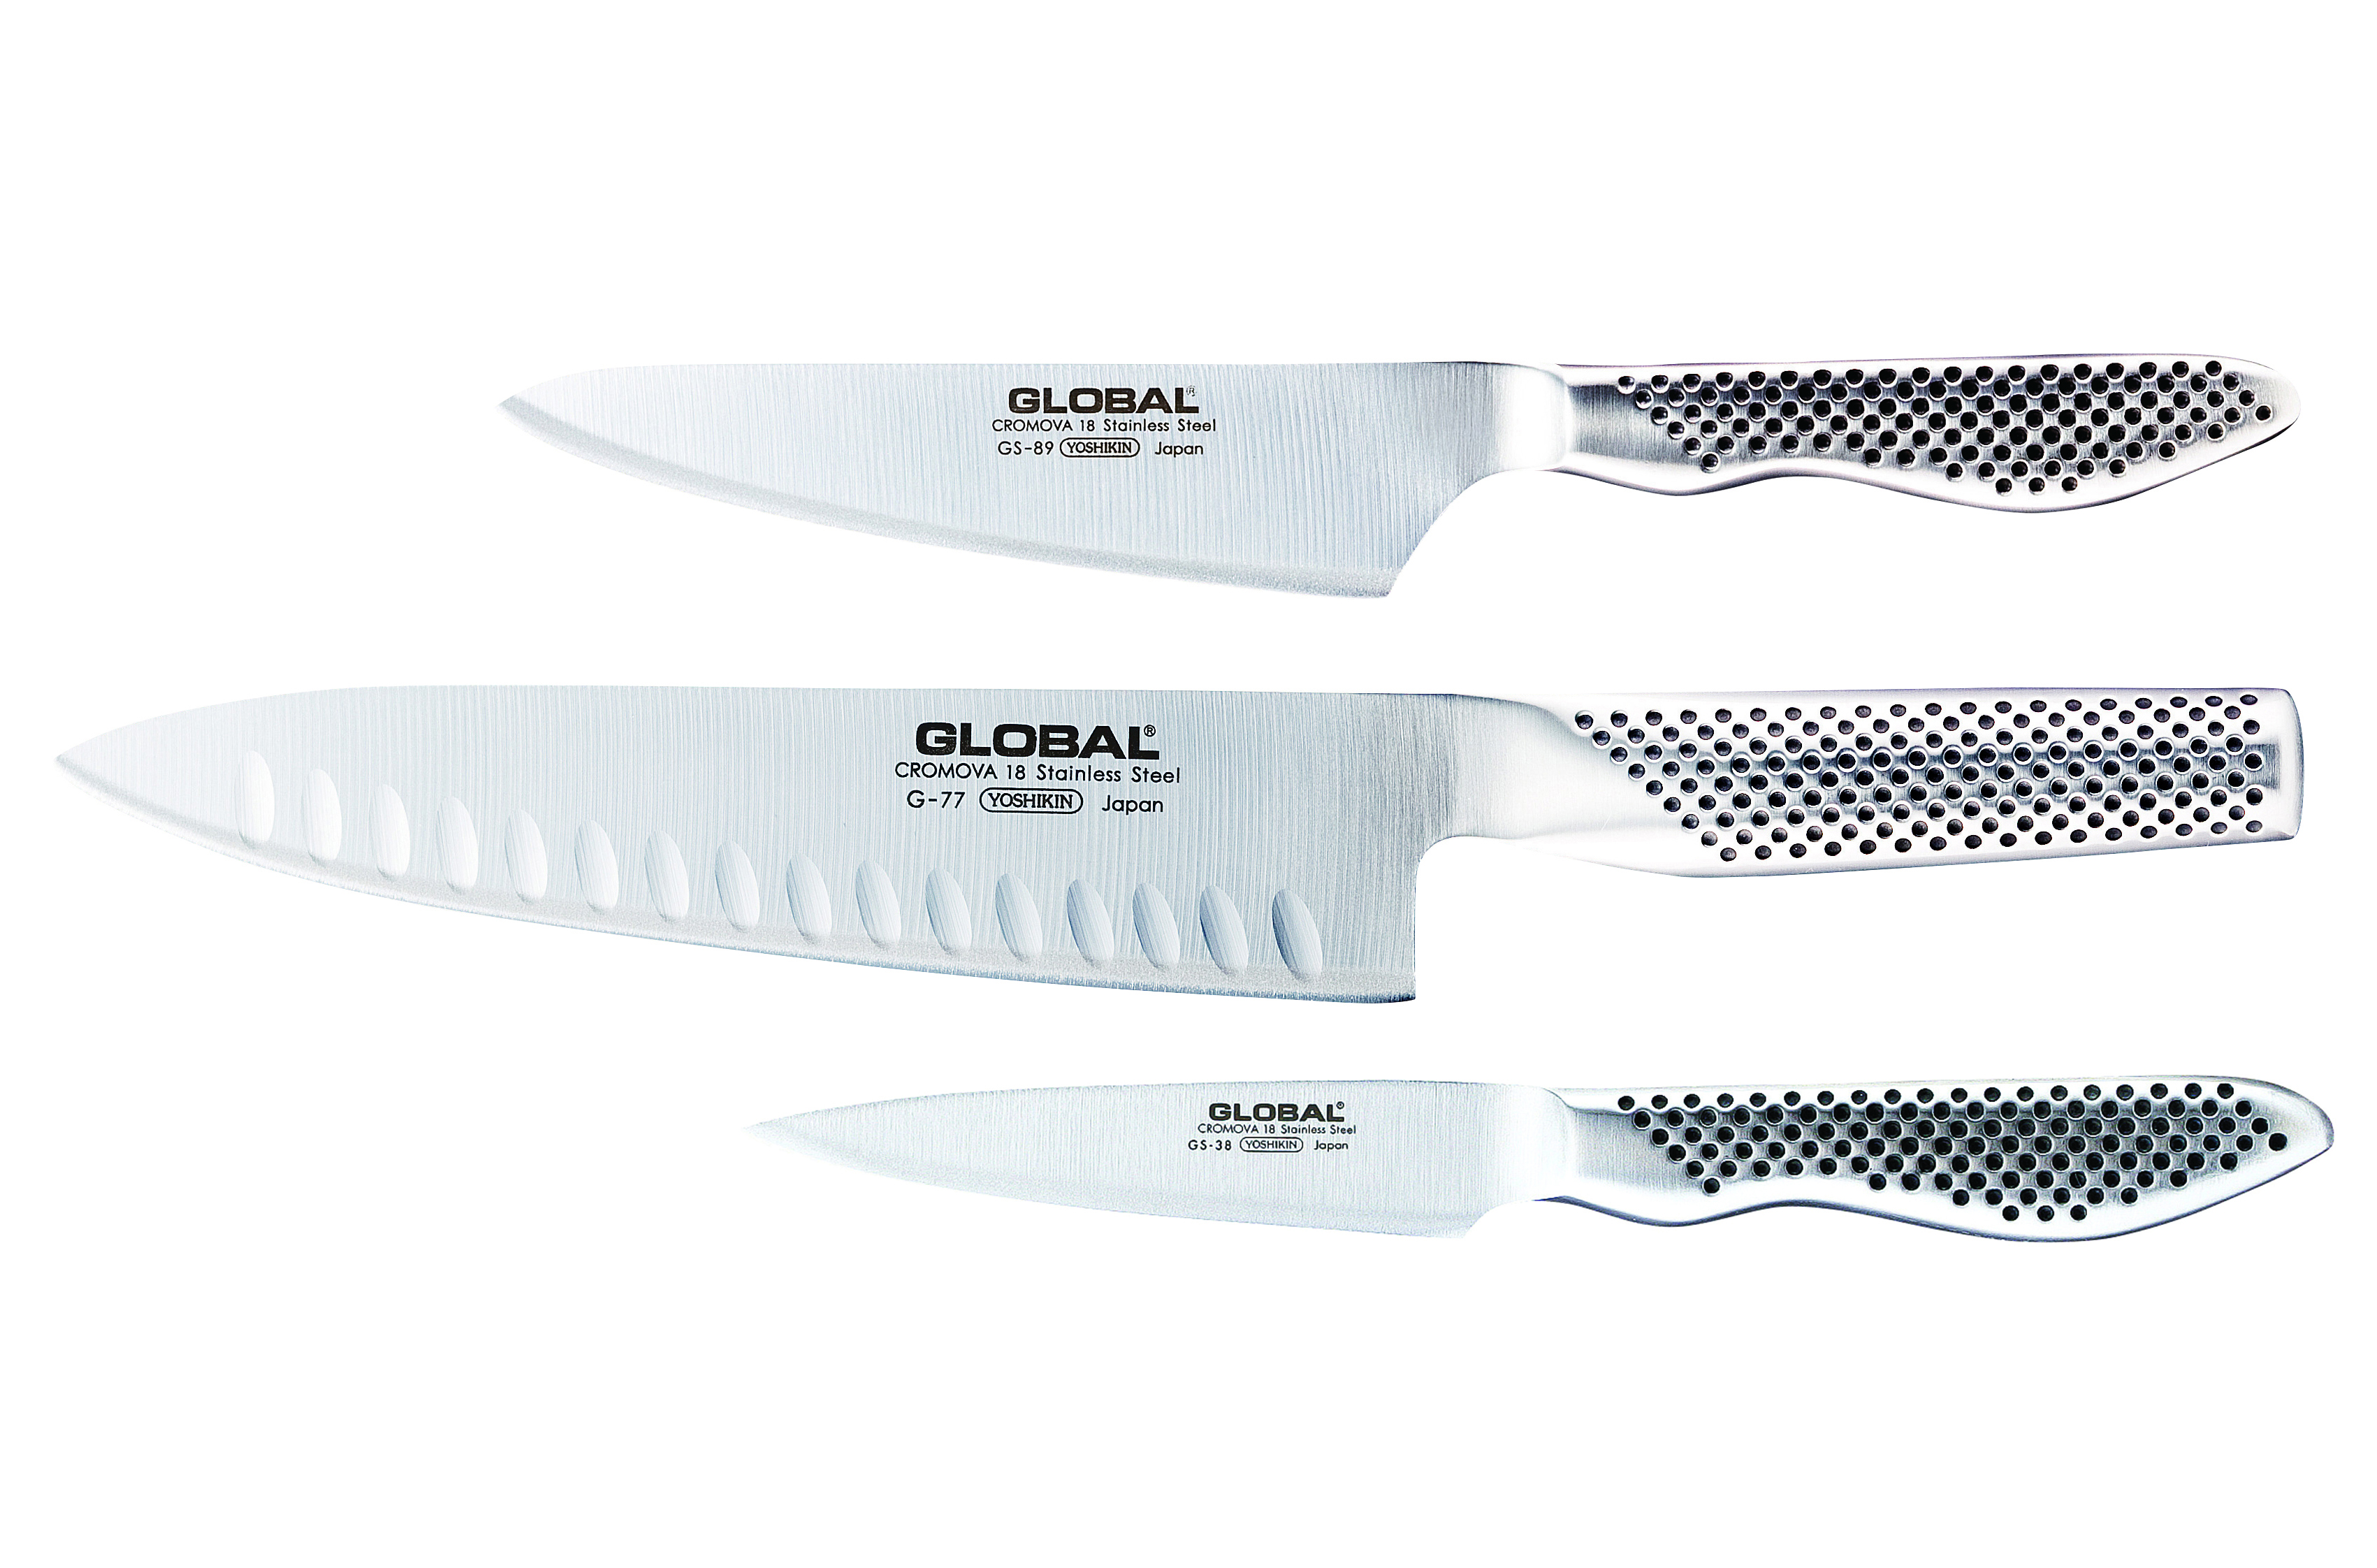 Global G-773889 3 Piece Kitchen Knife Set